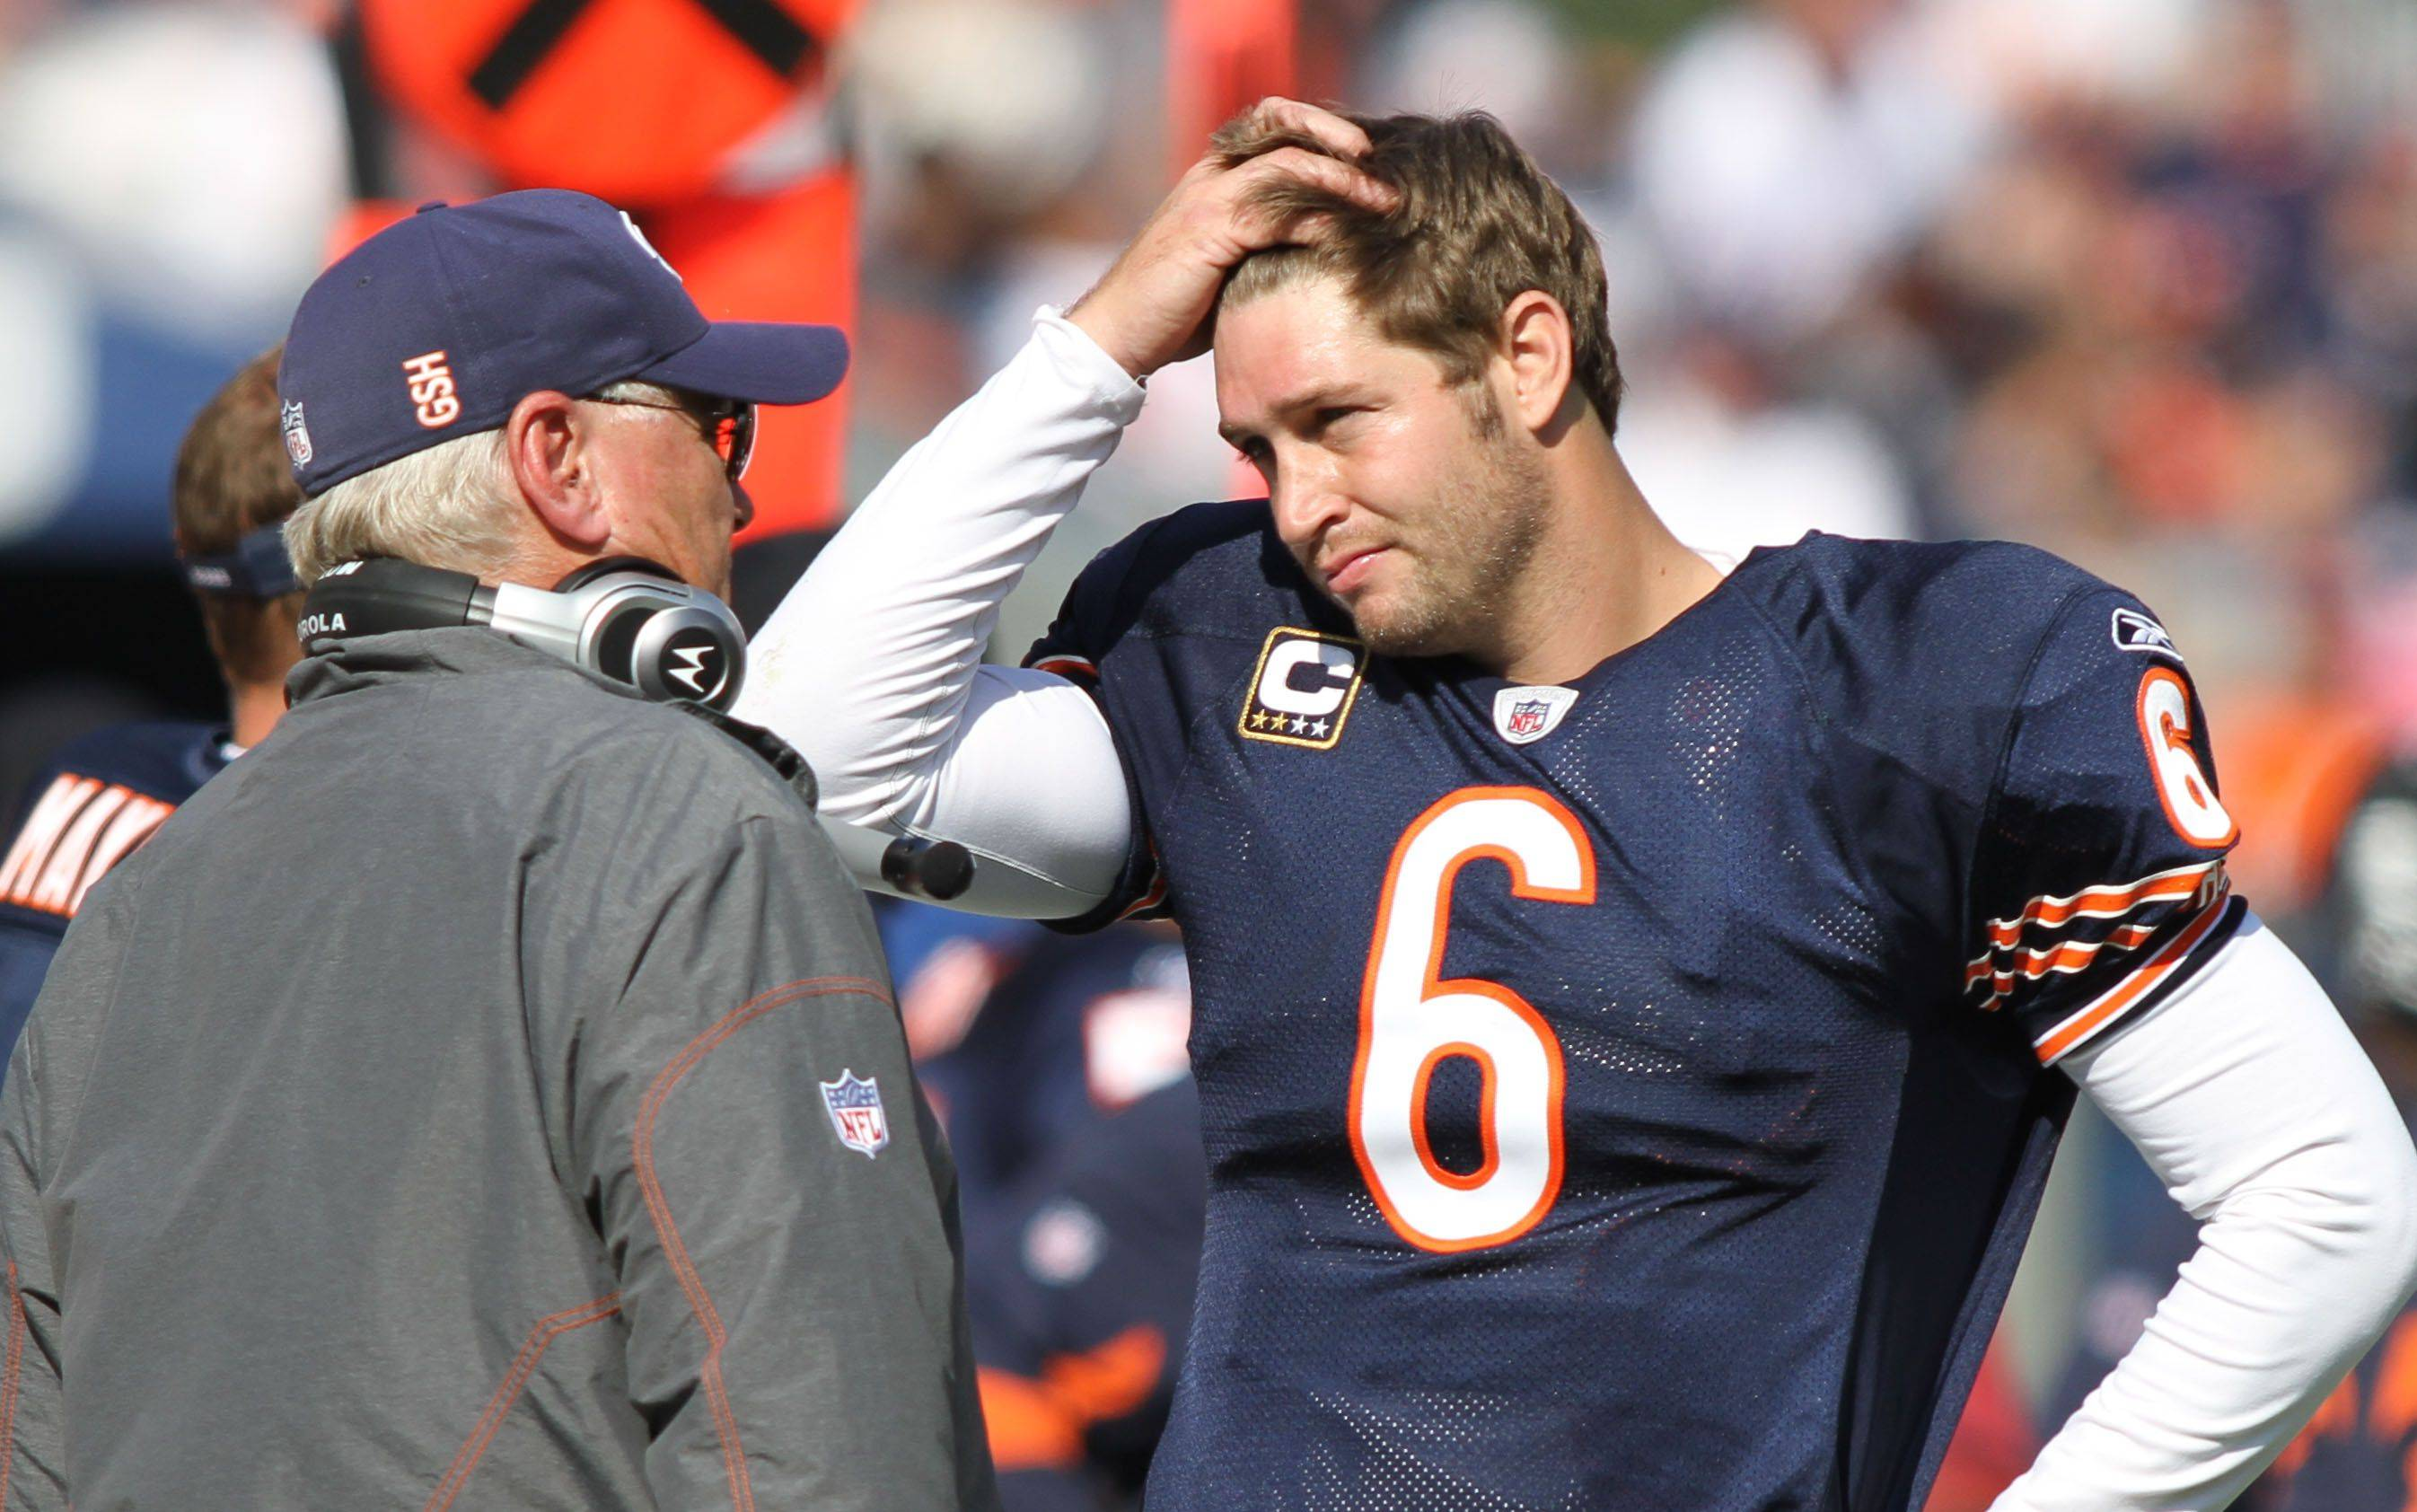 Bears quarterback Jay Cutler and Offensive Coordinator Mike Martz willl spend the bye week trying to get the offense started again.